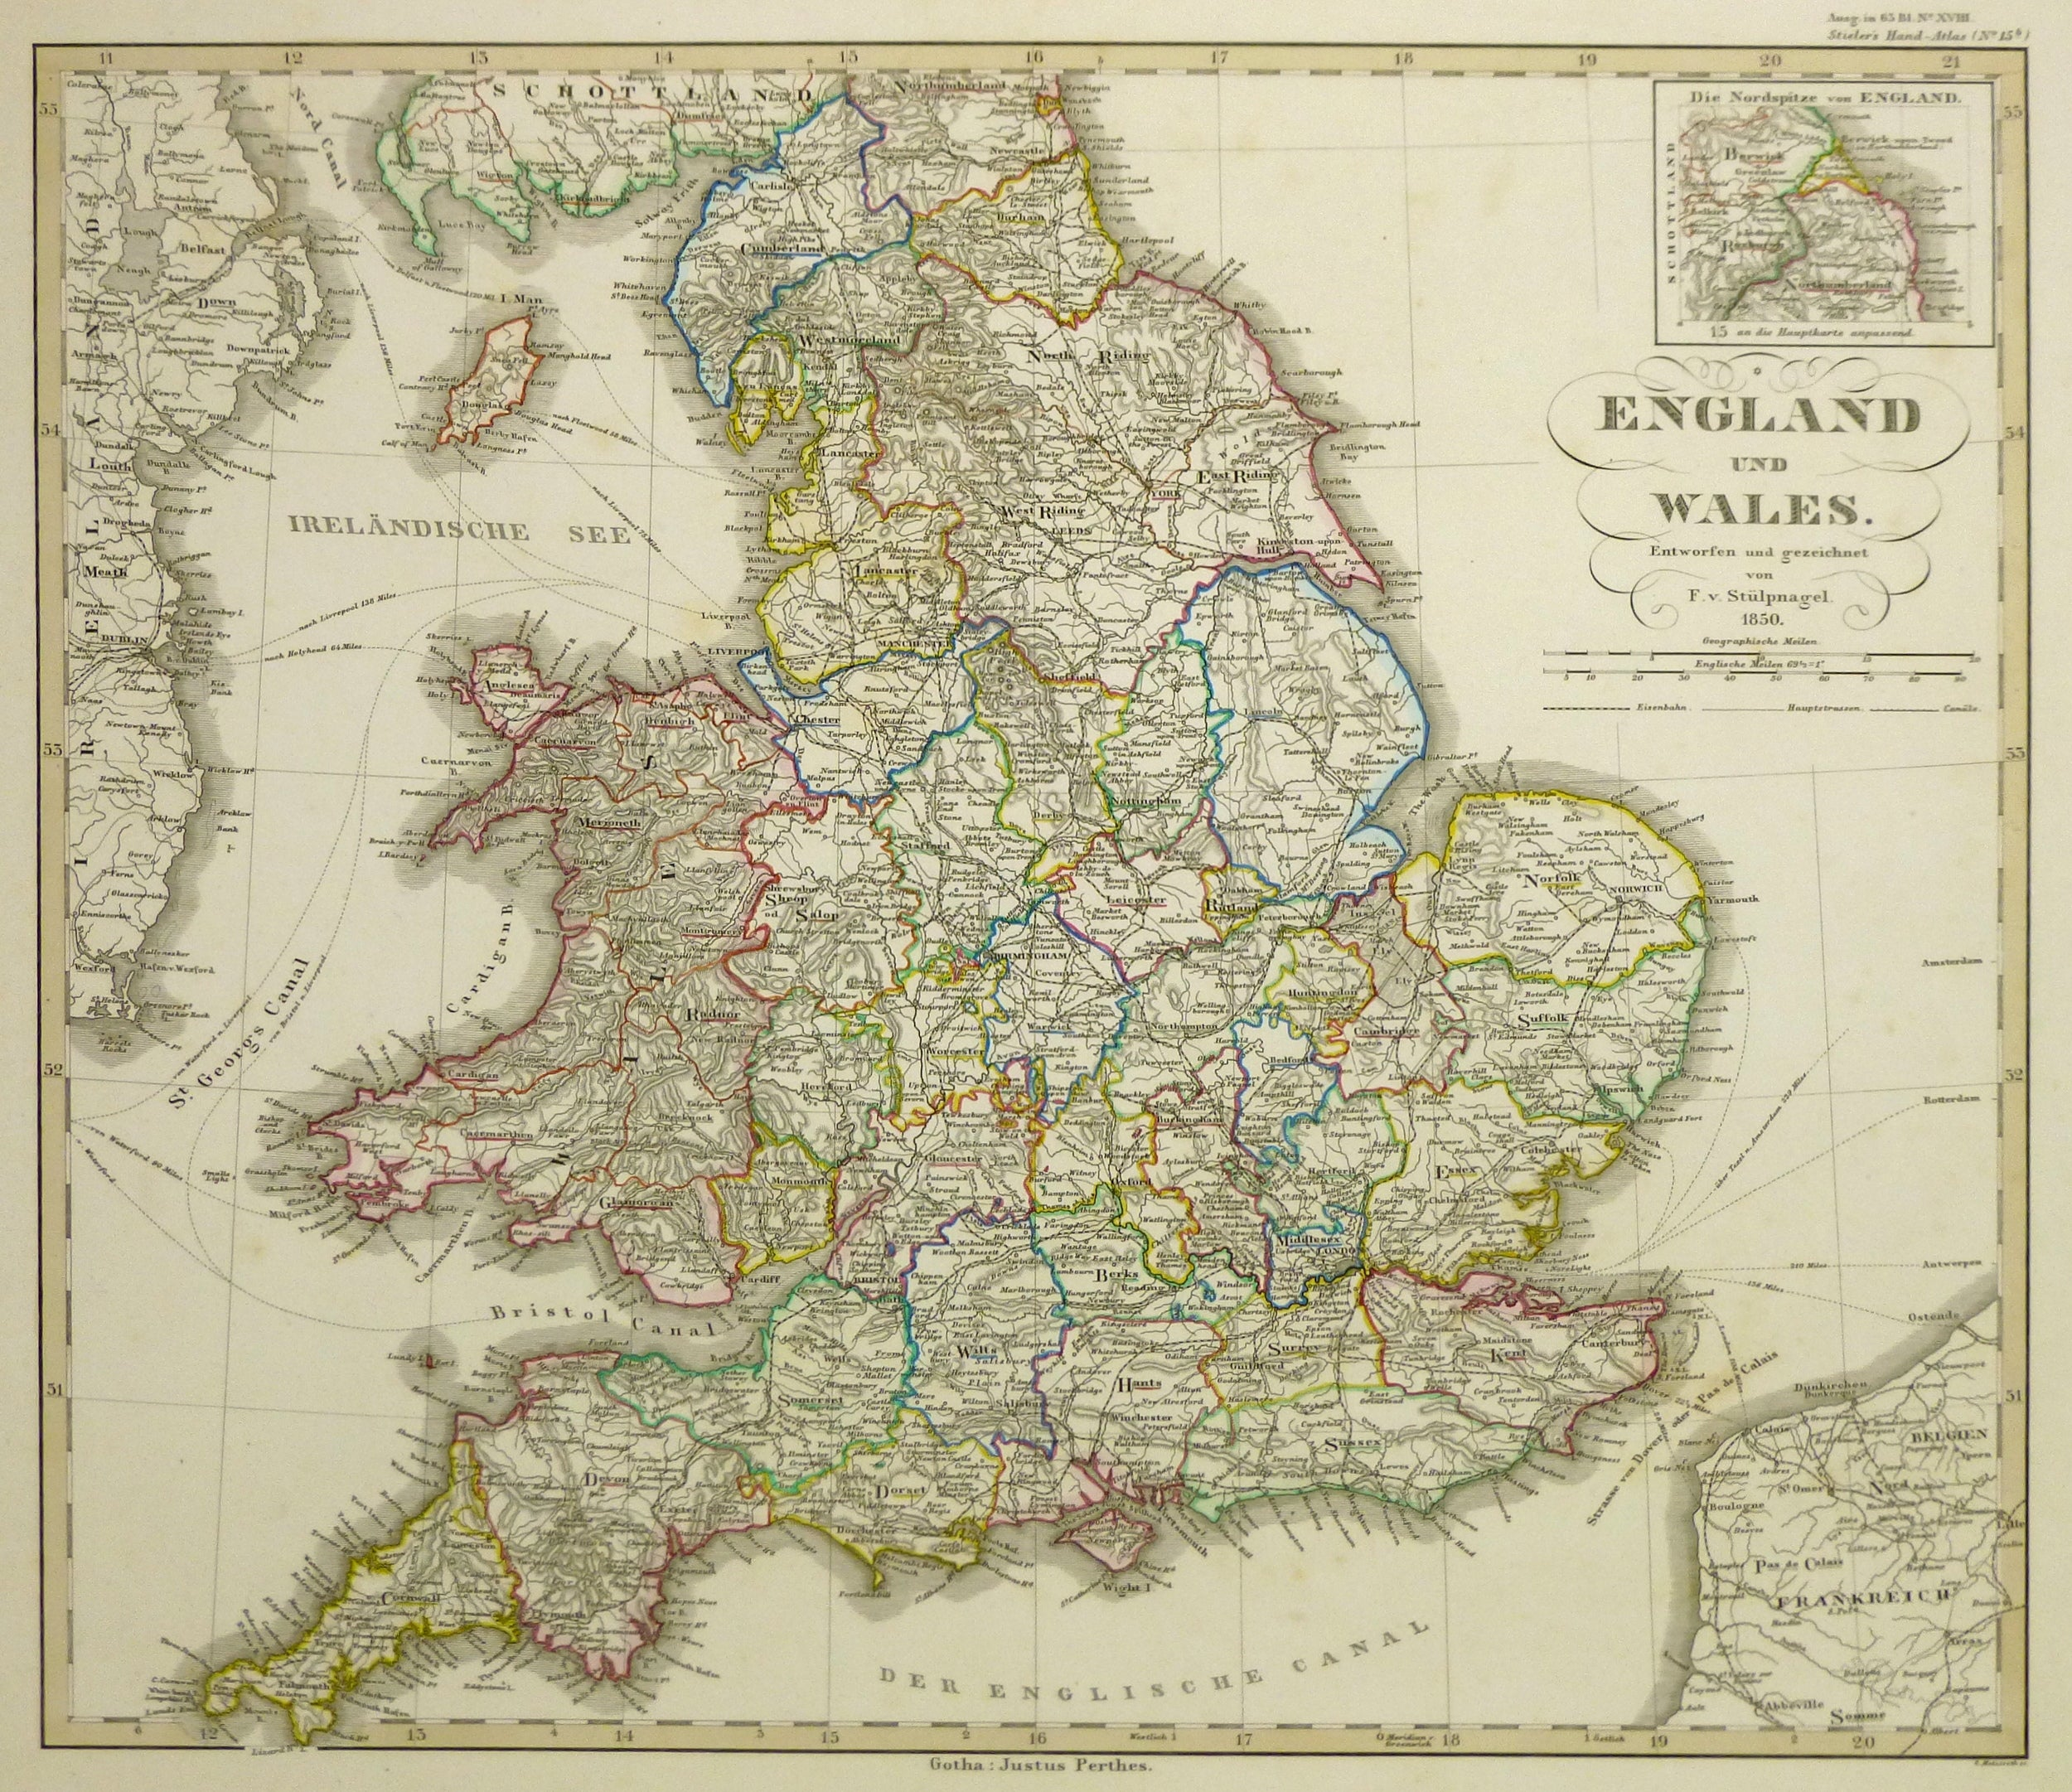 Show Map Of England.Map Of England Wales 1850